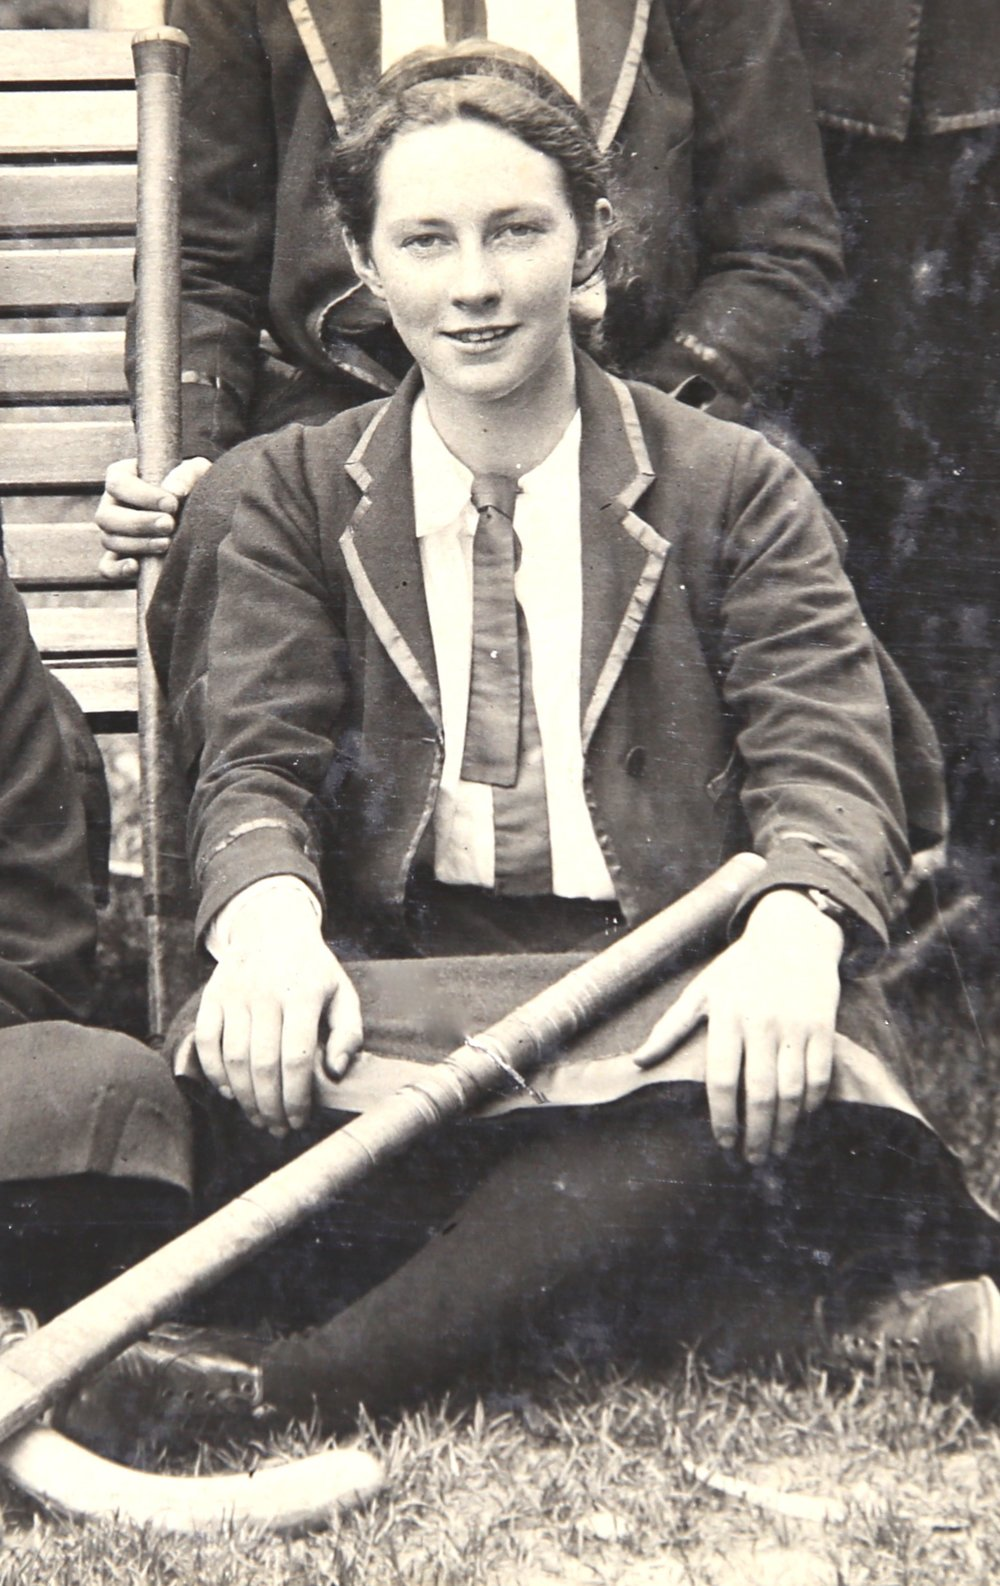 Ileen Macpherson, hockey team, Clyde School Archives, Image supplied by John Paull.